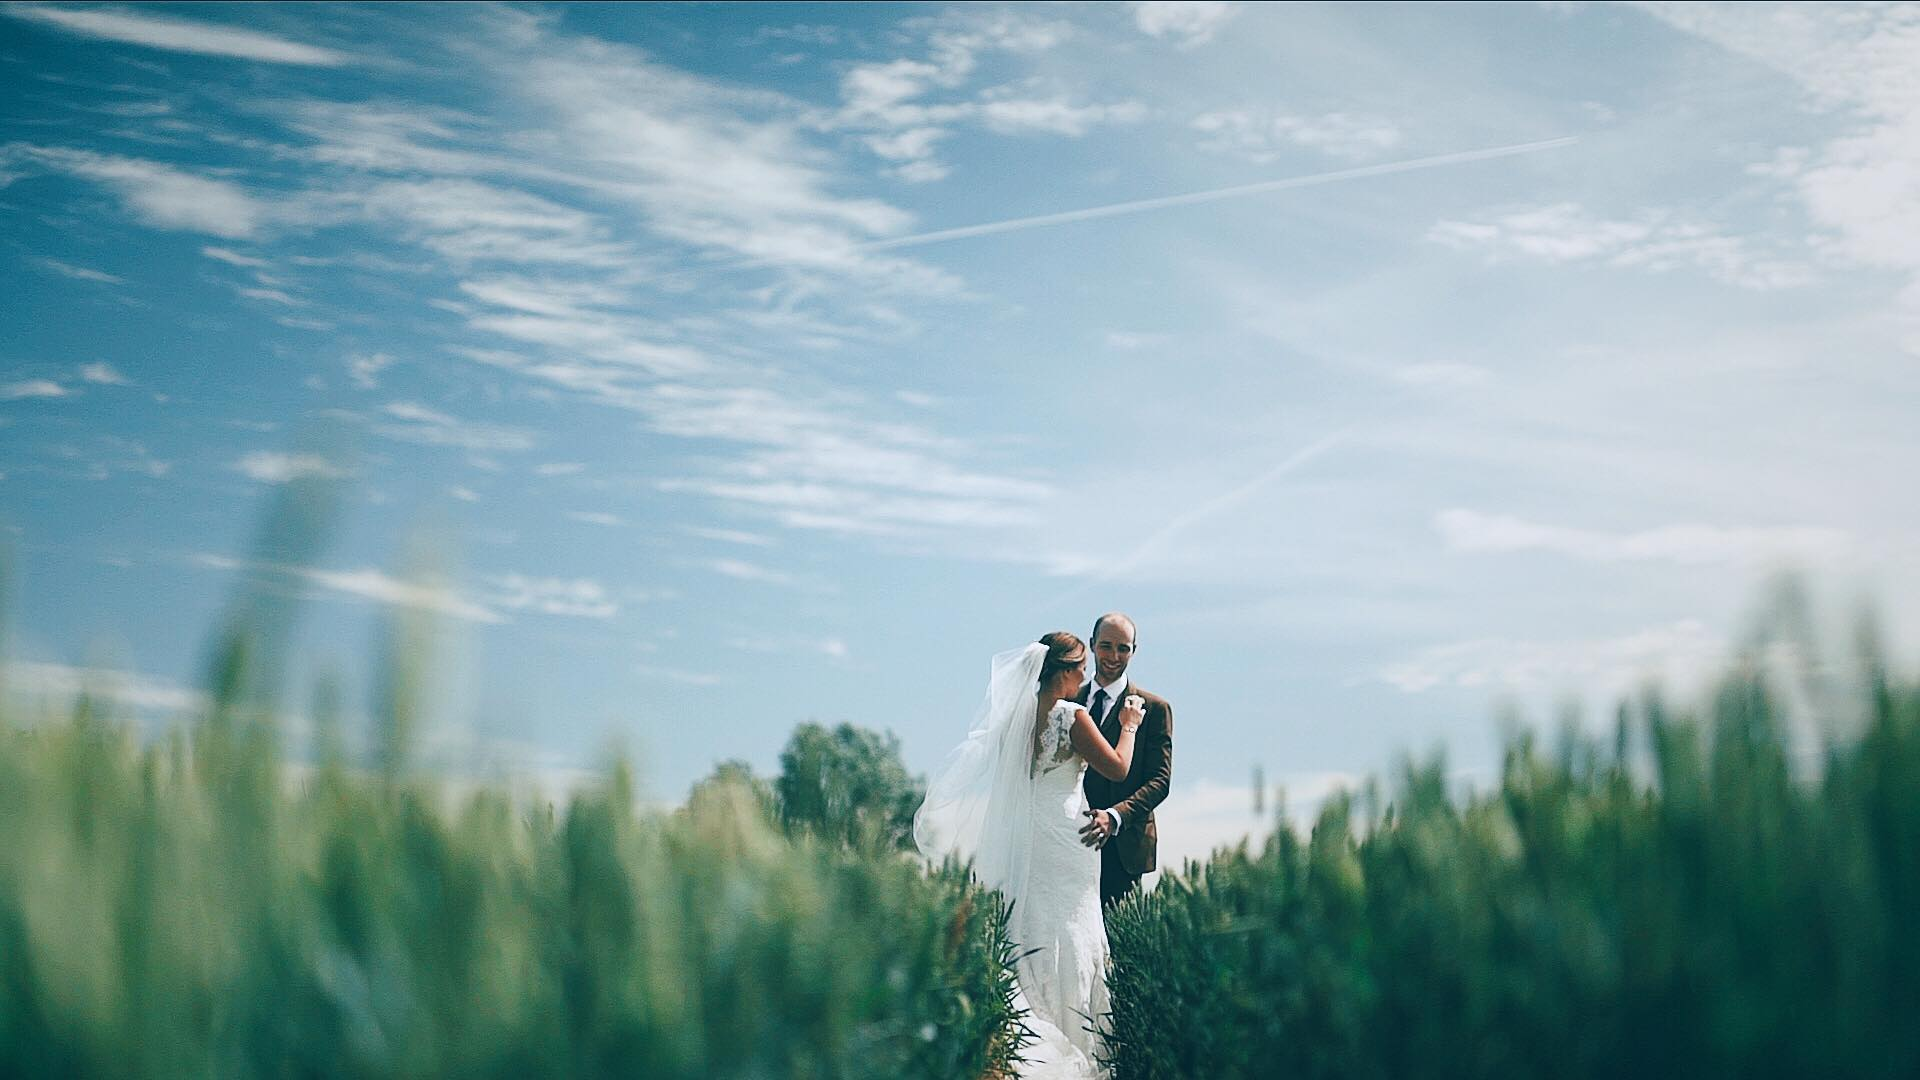 Essex Wedding Video - Philip Smith Visuals